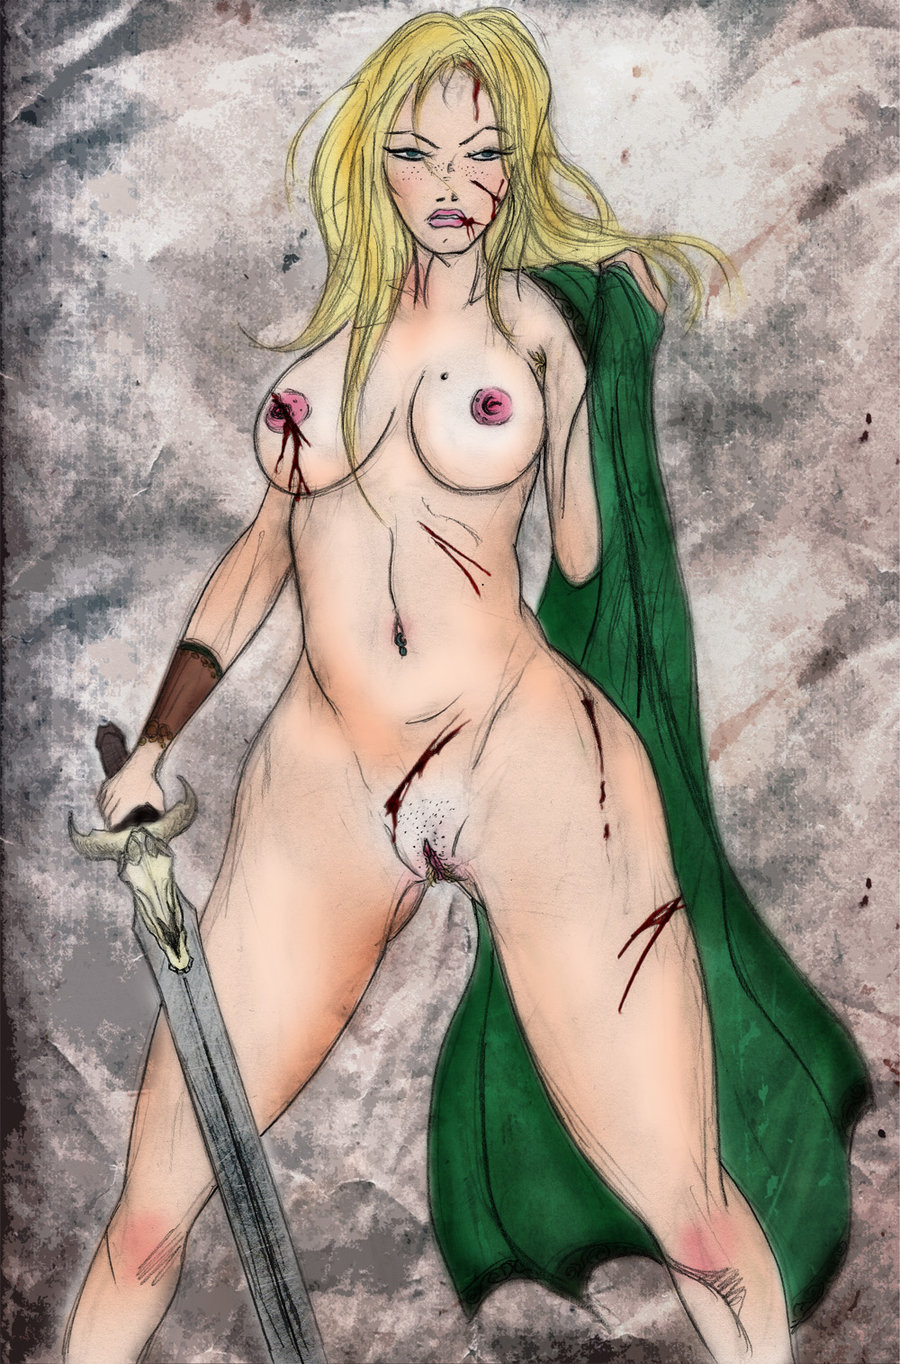 Lord of the rings sex art pics porncraft film